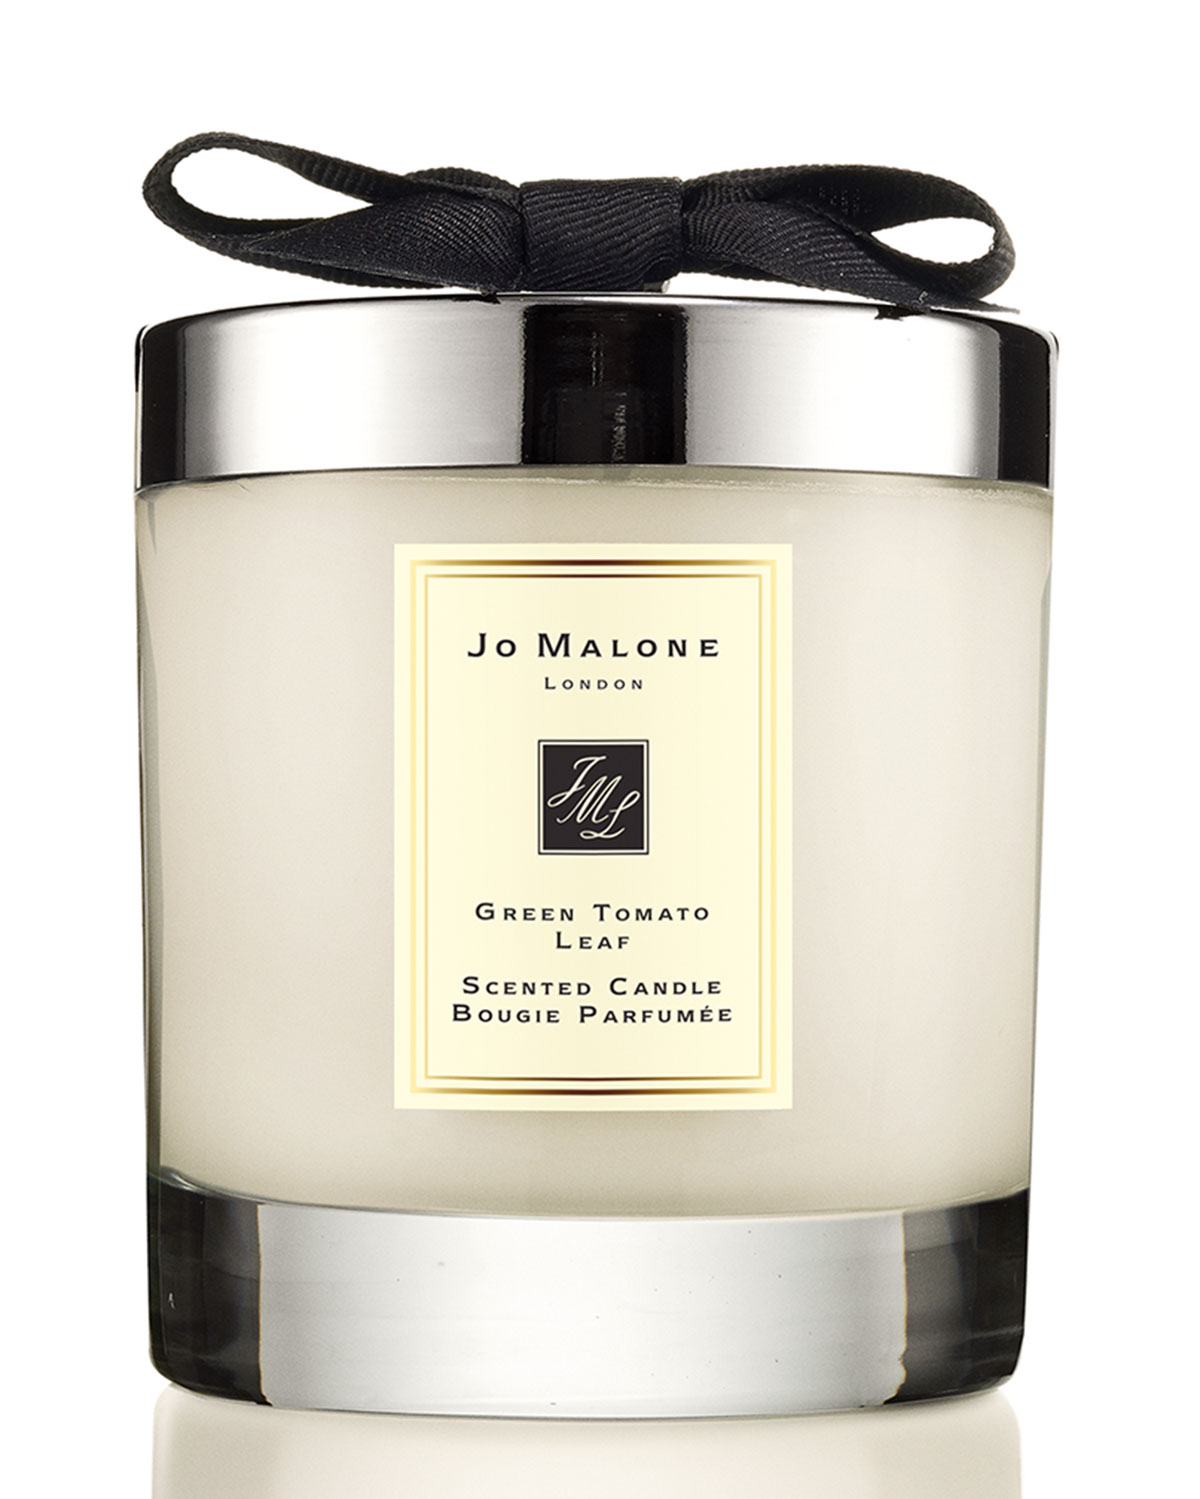 'Jo Malone London Green Tomato Leaf Scented Home Candle, 7 Oz